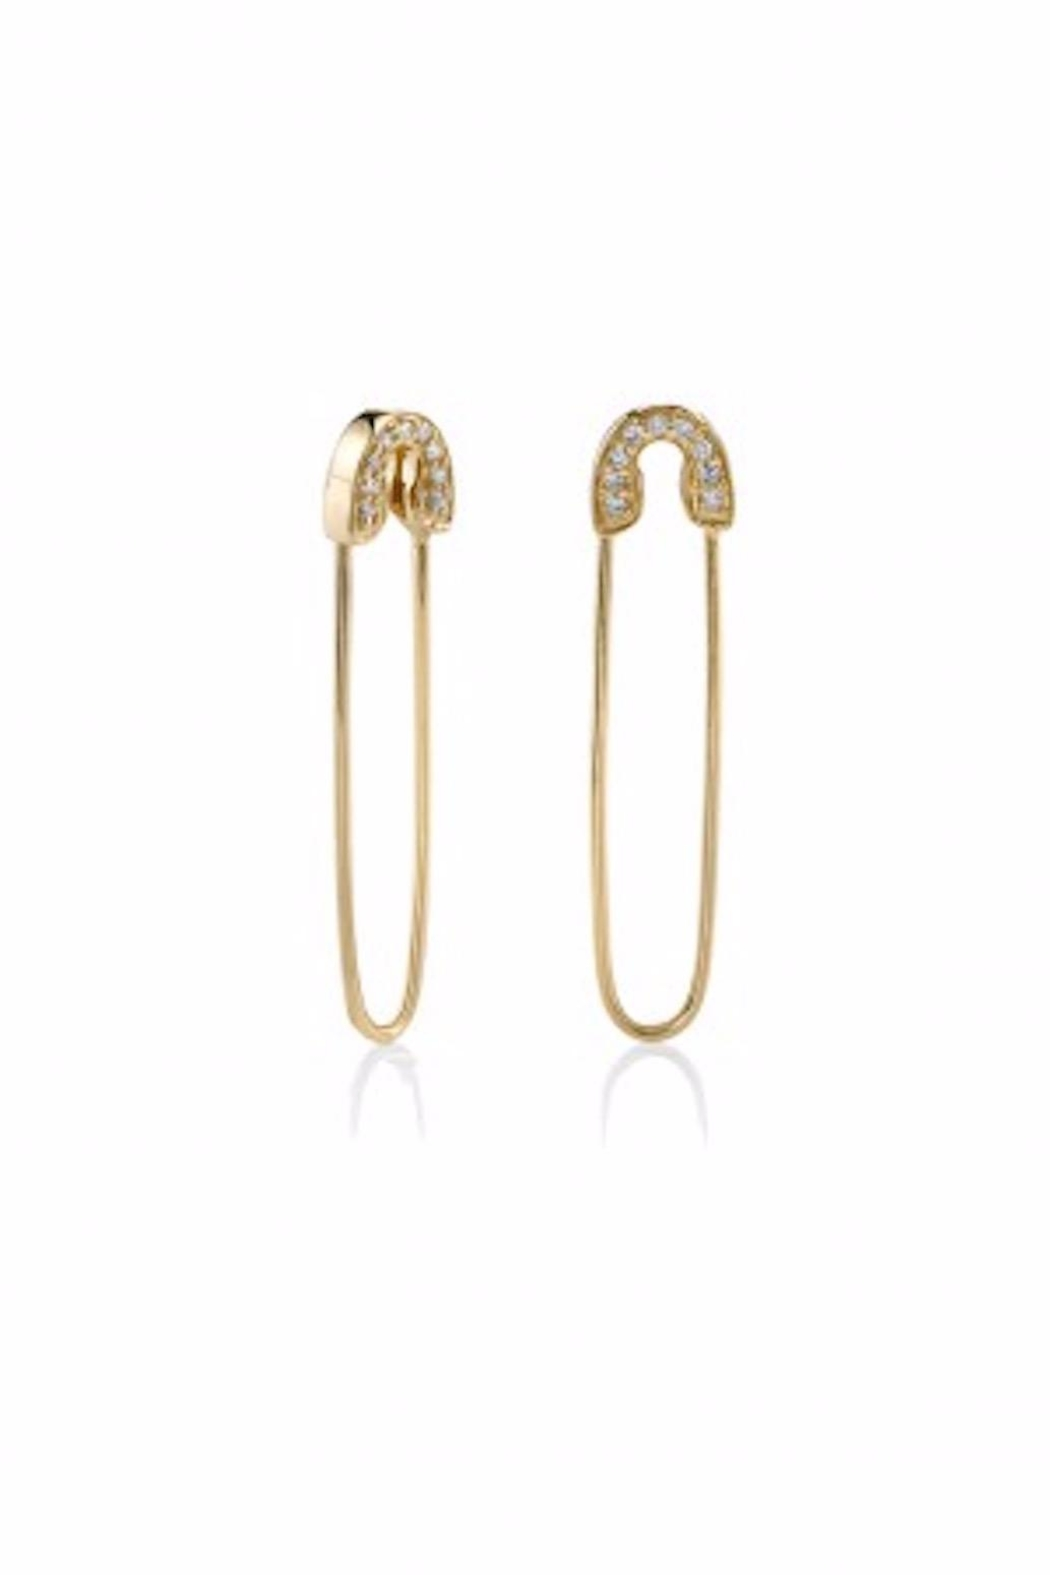 Sydney Evan Safety Pin Earrings - Main Image